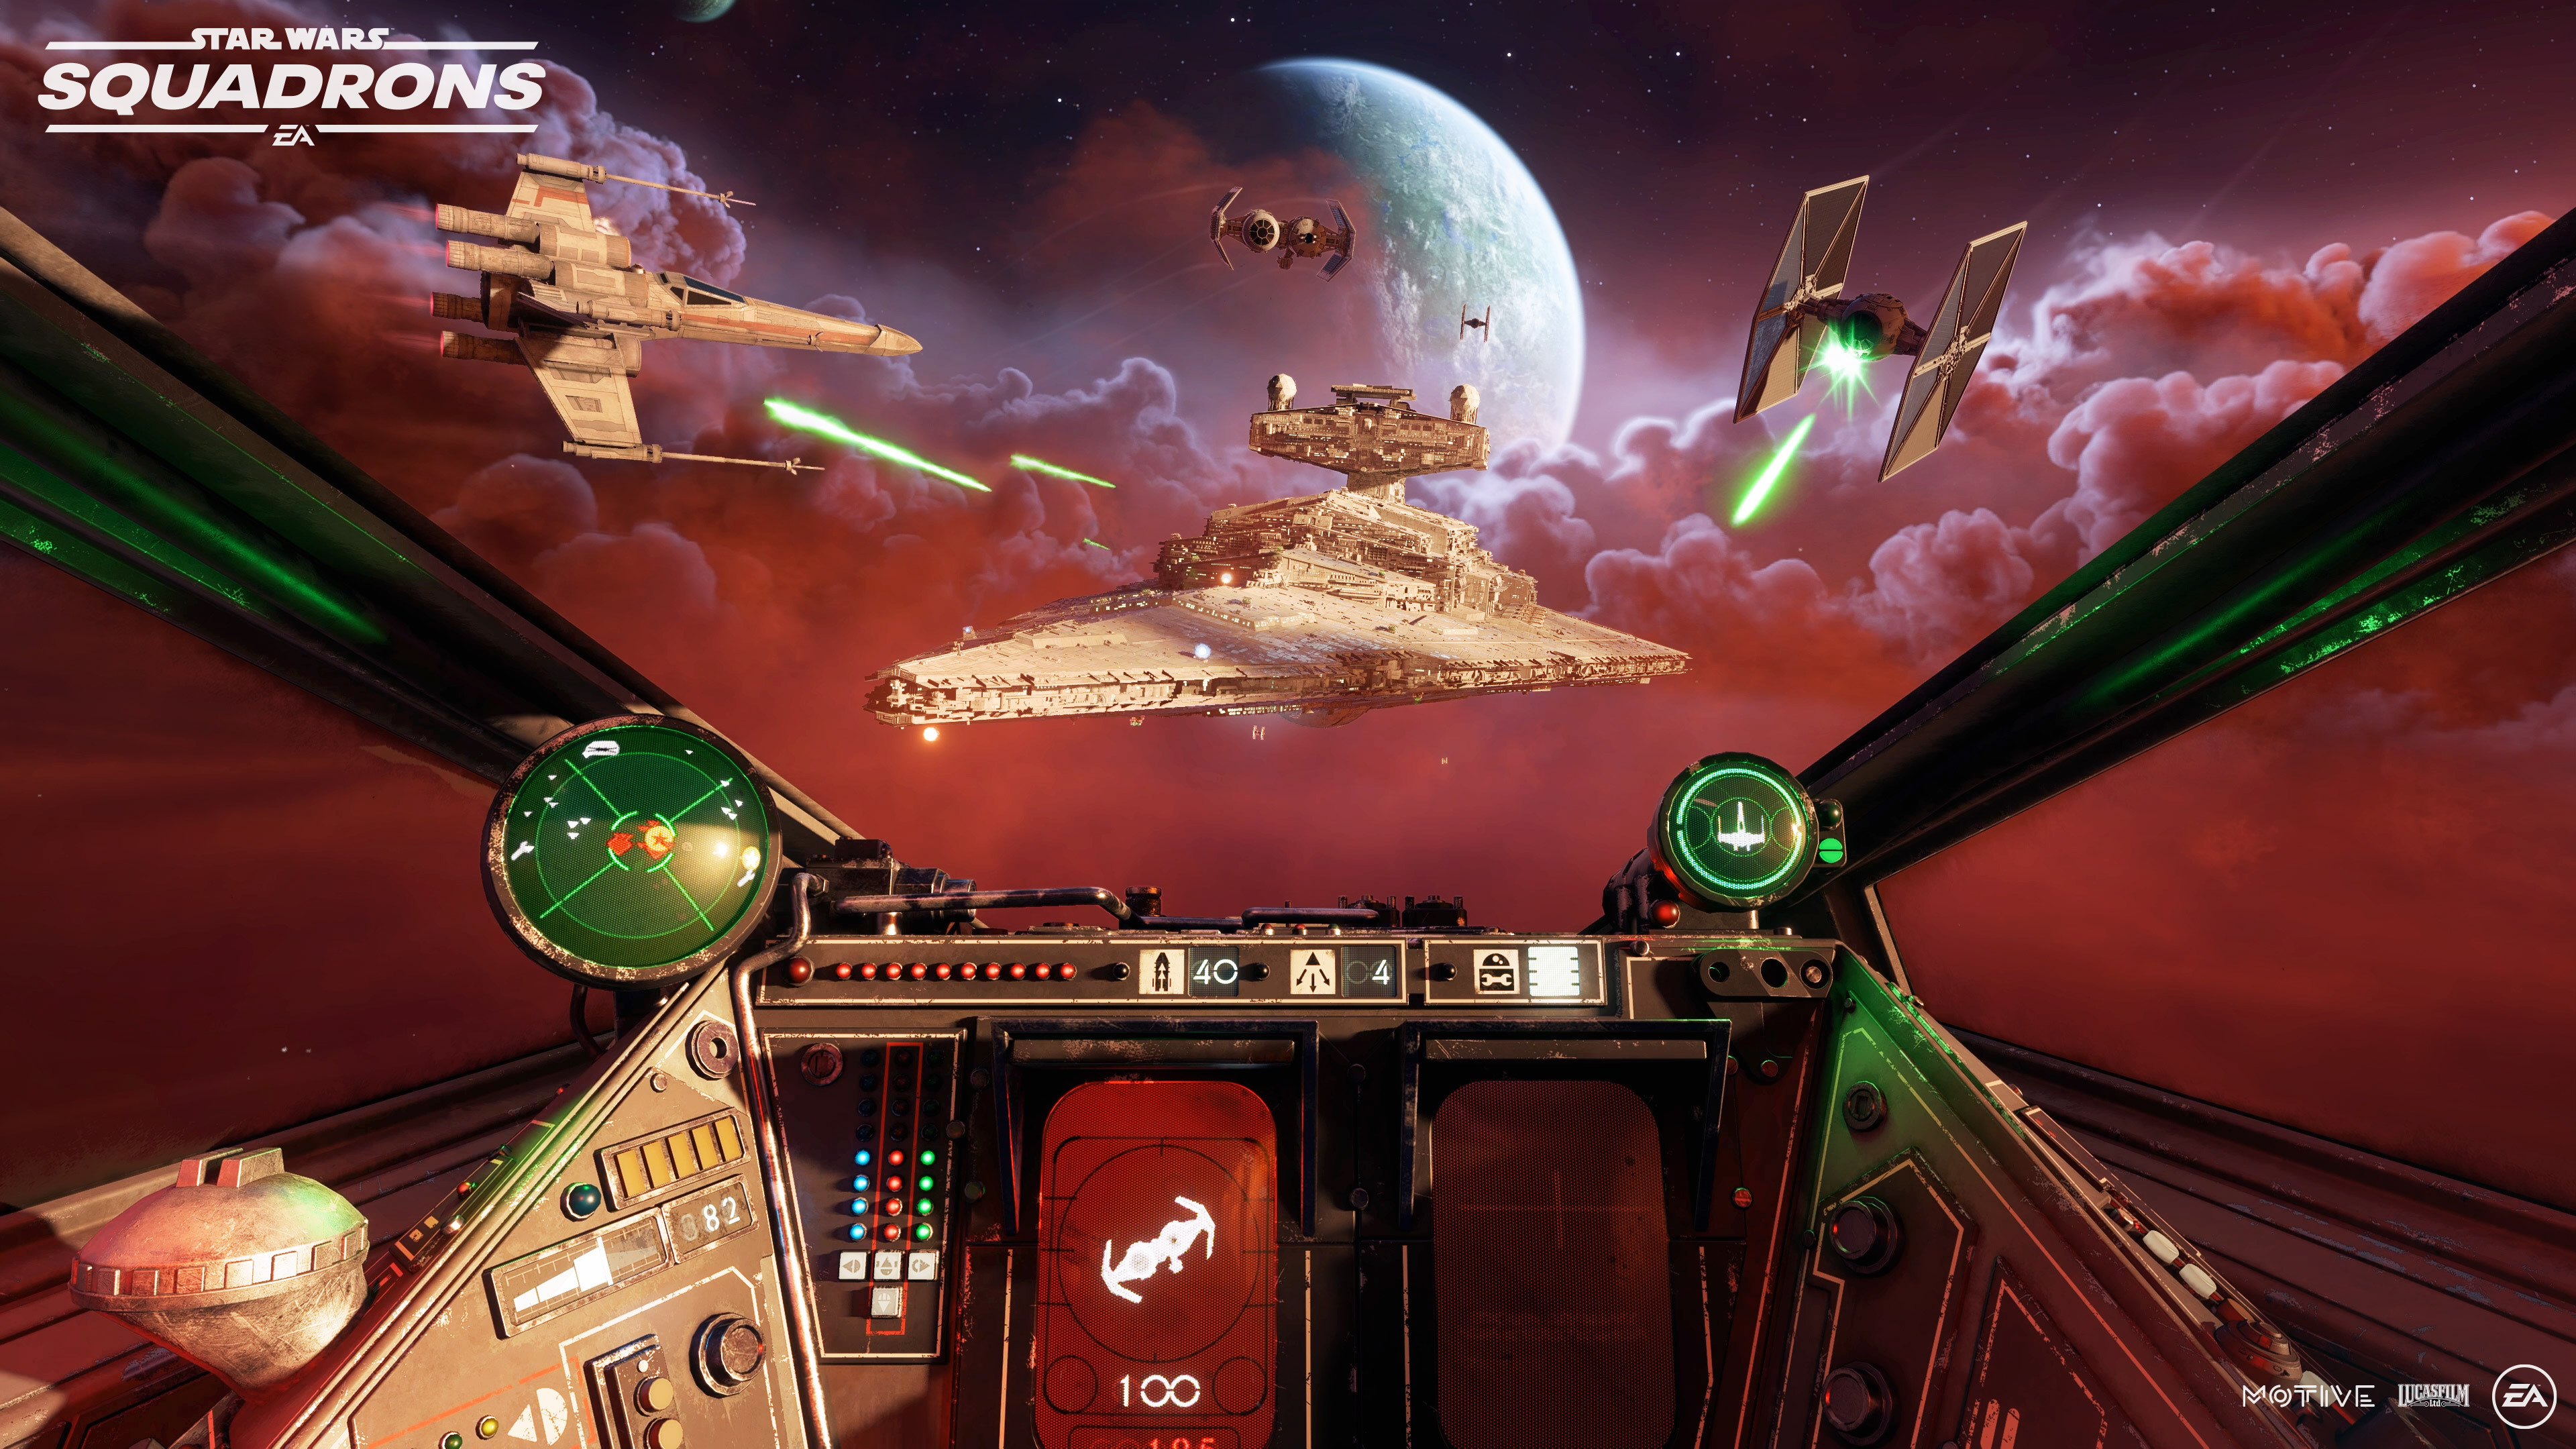 Star Wars Squadrons Review A True Successor To X Wing Vs Tie Fighter Den Of Geek